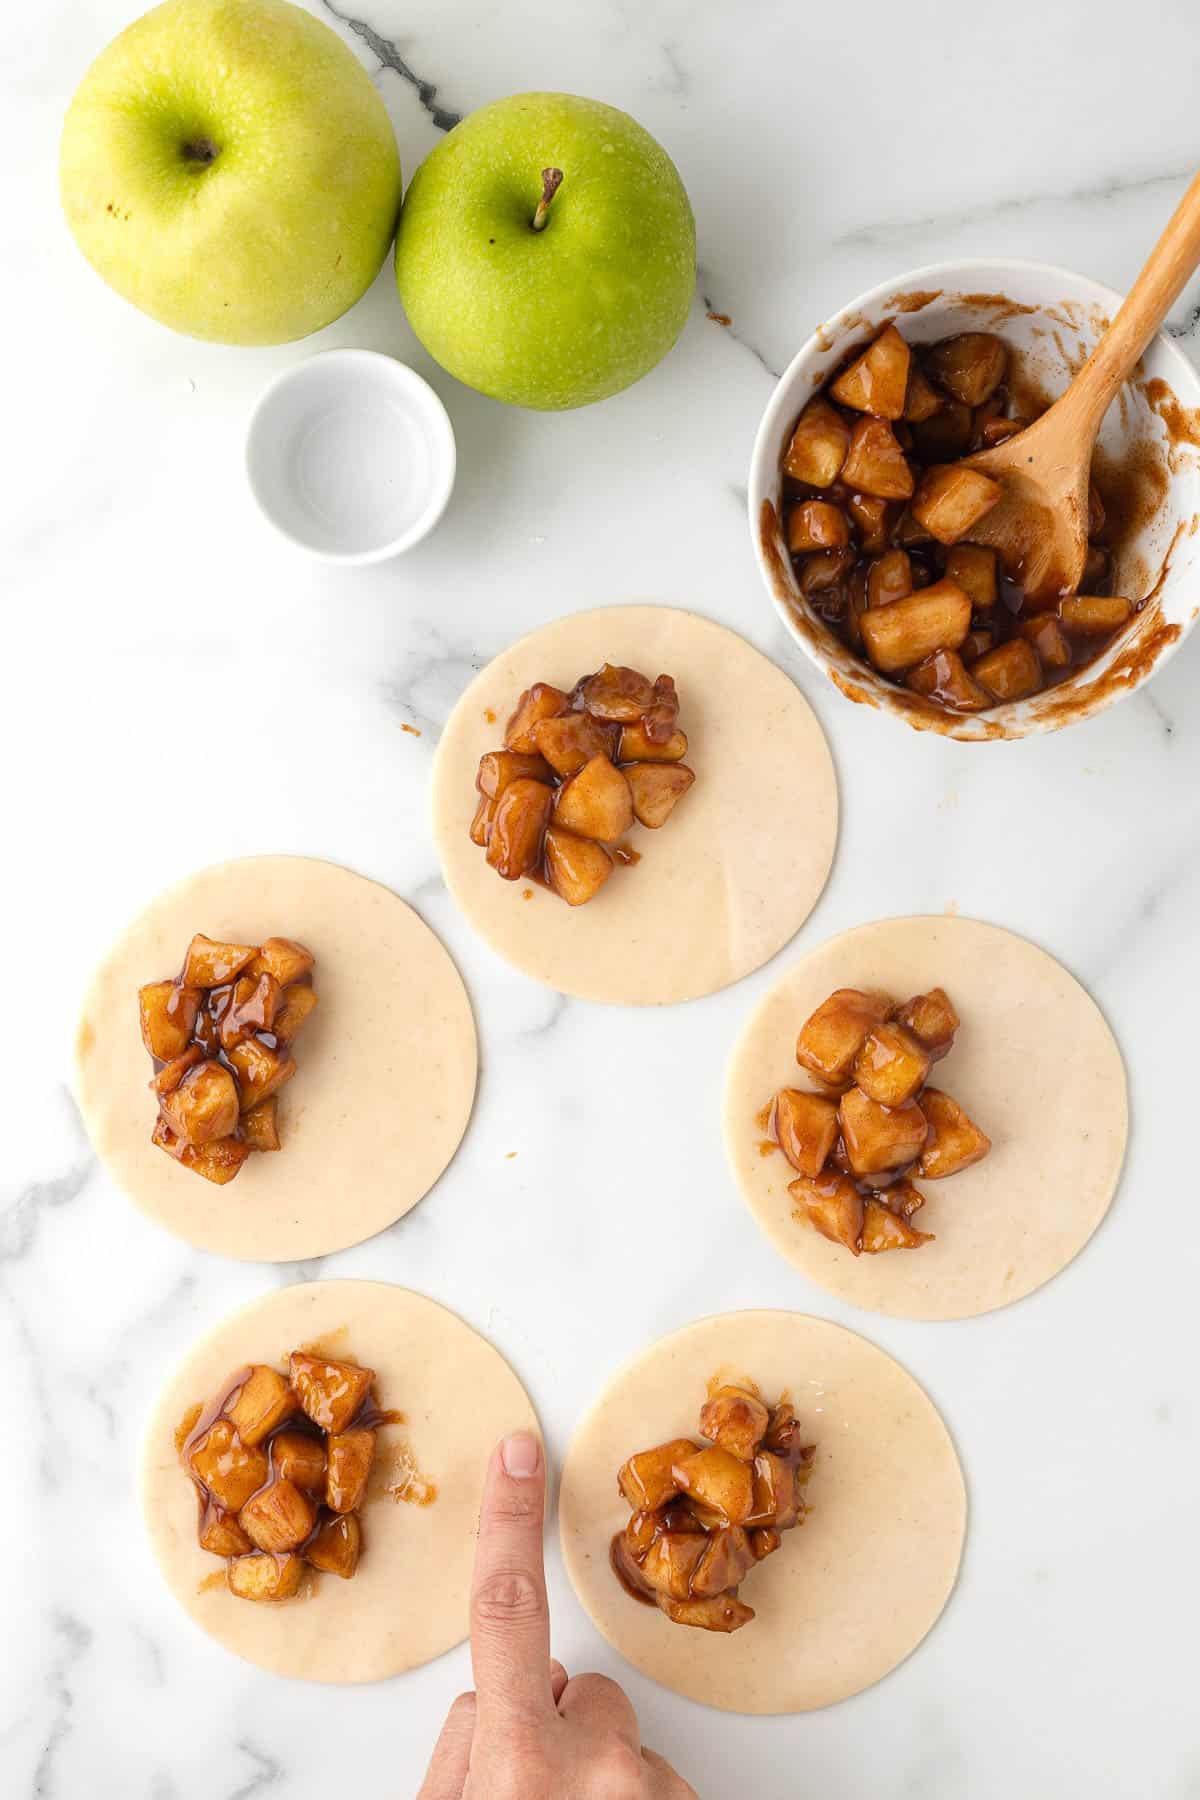 dough rolled out into circles and topped with apple pie filling to make individual apple pies